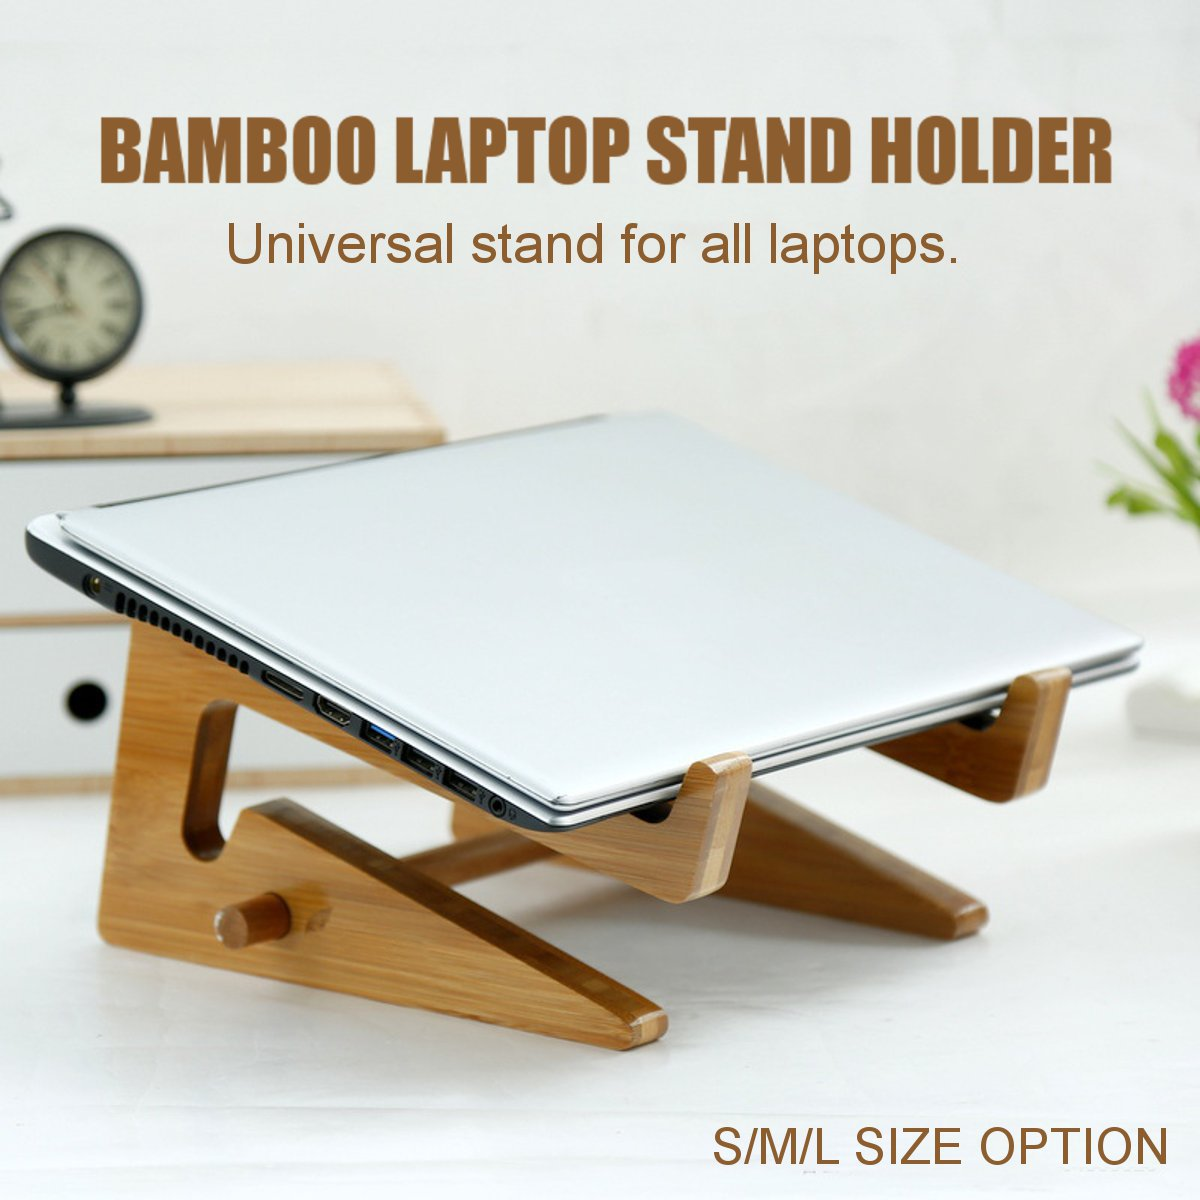 Portable Bamboo Laptop Stand Holder Organizer Desk Tablet Notebook Cooling Bracket Home Office Computer Tablet Accessories S/M/L